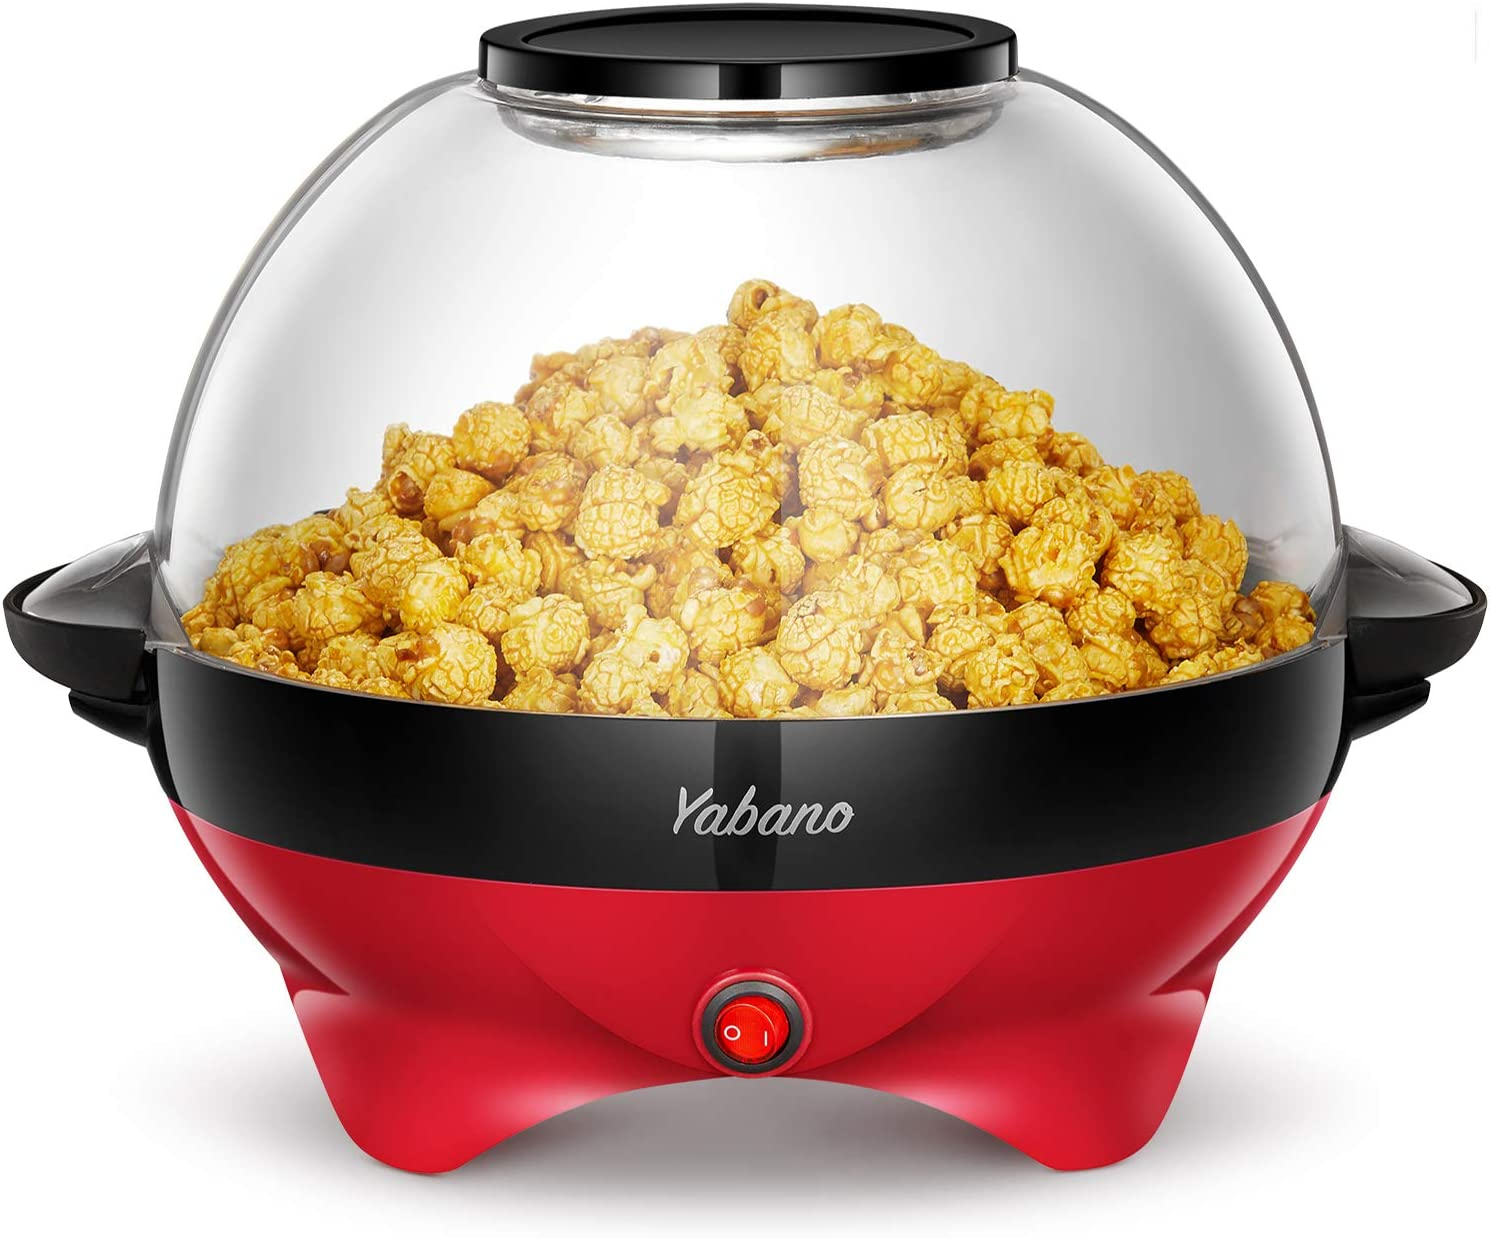 Popcorn Machine, 6-Quart Popcorn Popper maker, Nonstick Plate, Electric Stirring with Quick-Heat Technology, Cool Touch Handles, 2 in 1 Thicken Transparent Cover, Makes 24 Cups of Popcorn, Dishwasher Safe, 800W, Red, by Yabano